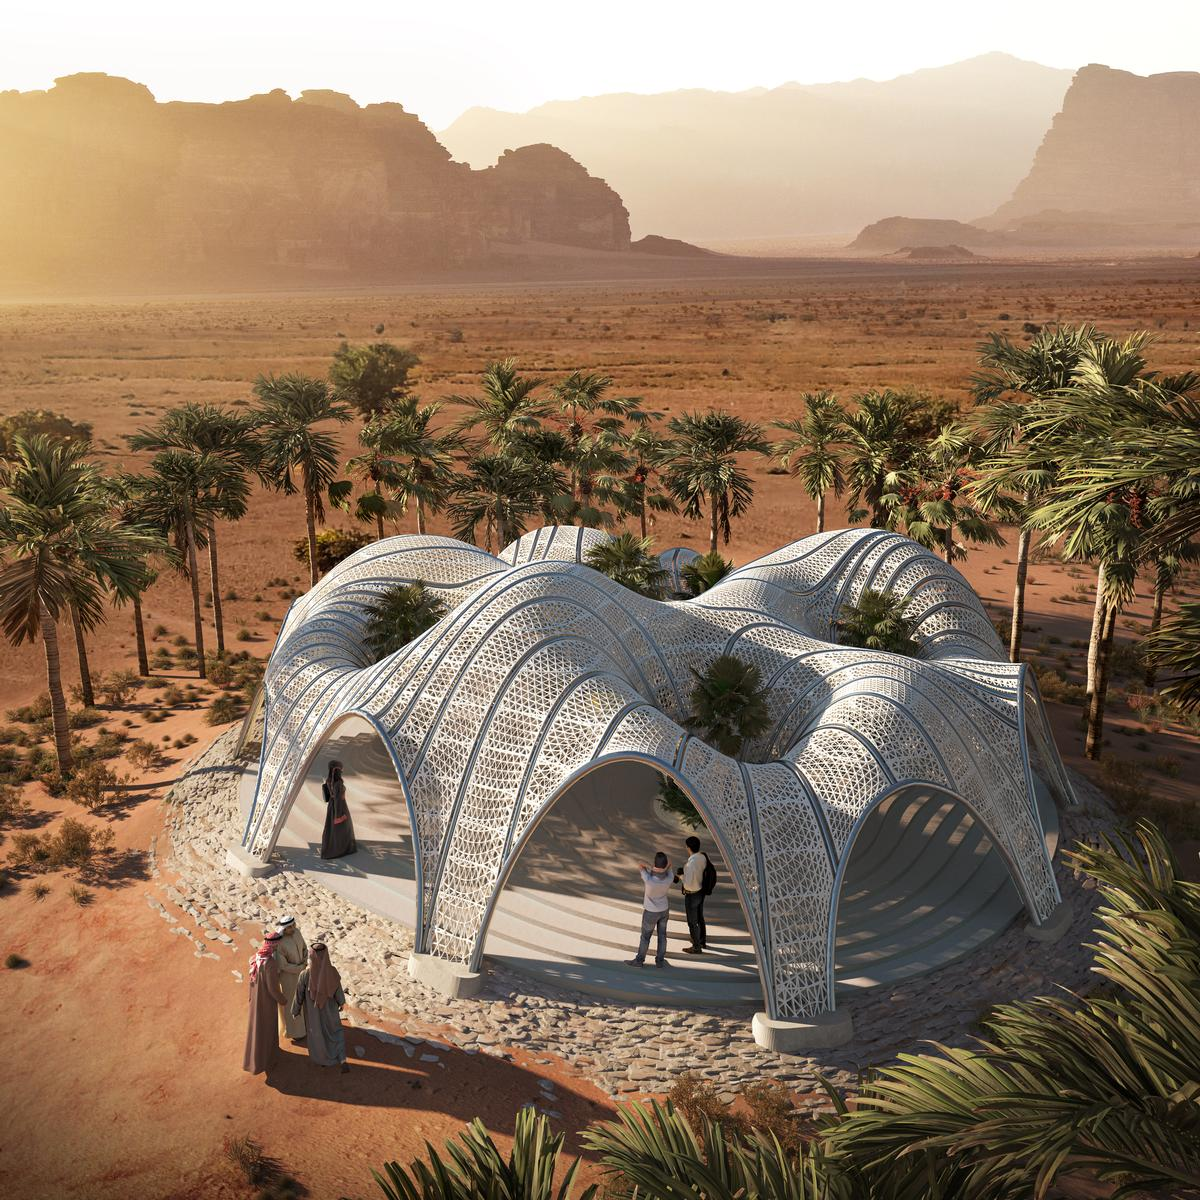 MEAN*'s algorithmically-designed, 3D-printed desert pavilion is an oasis for rest and gathering